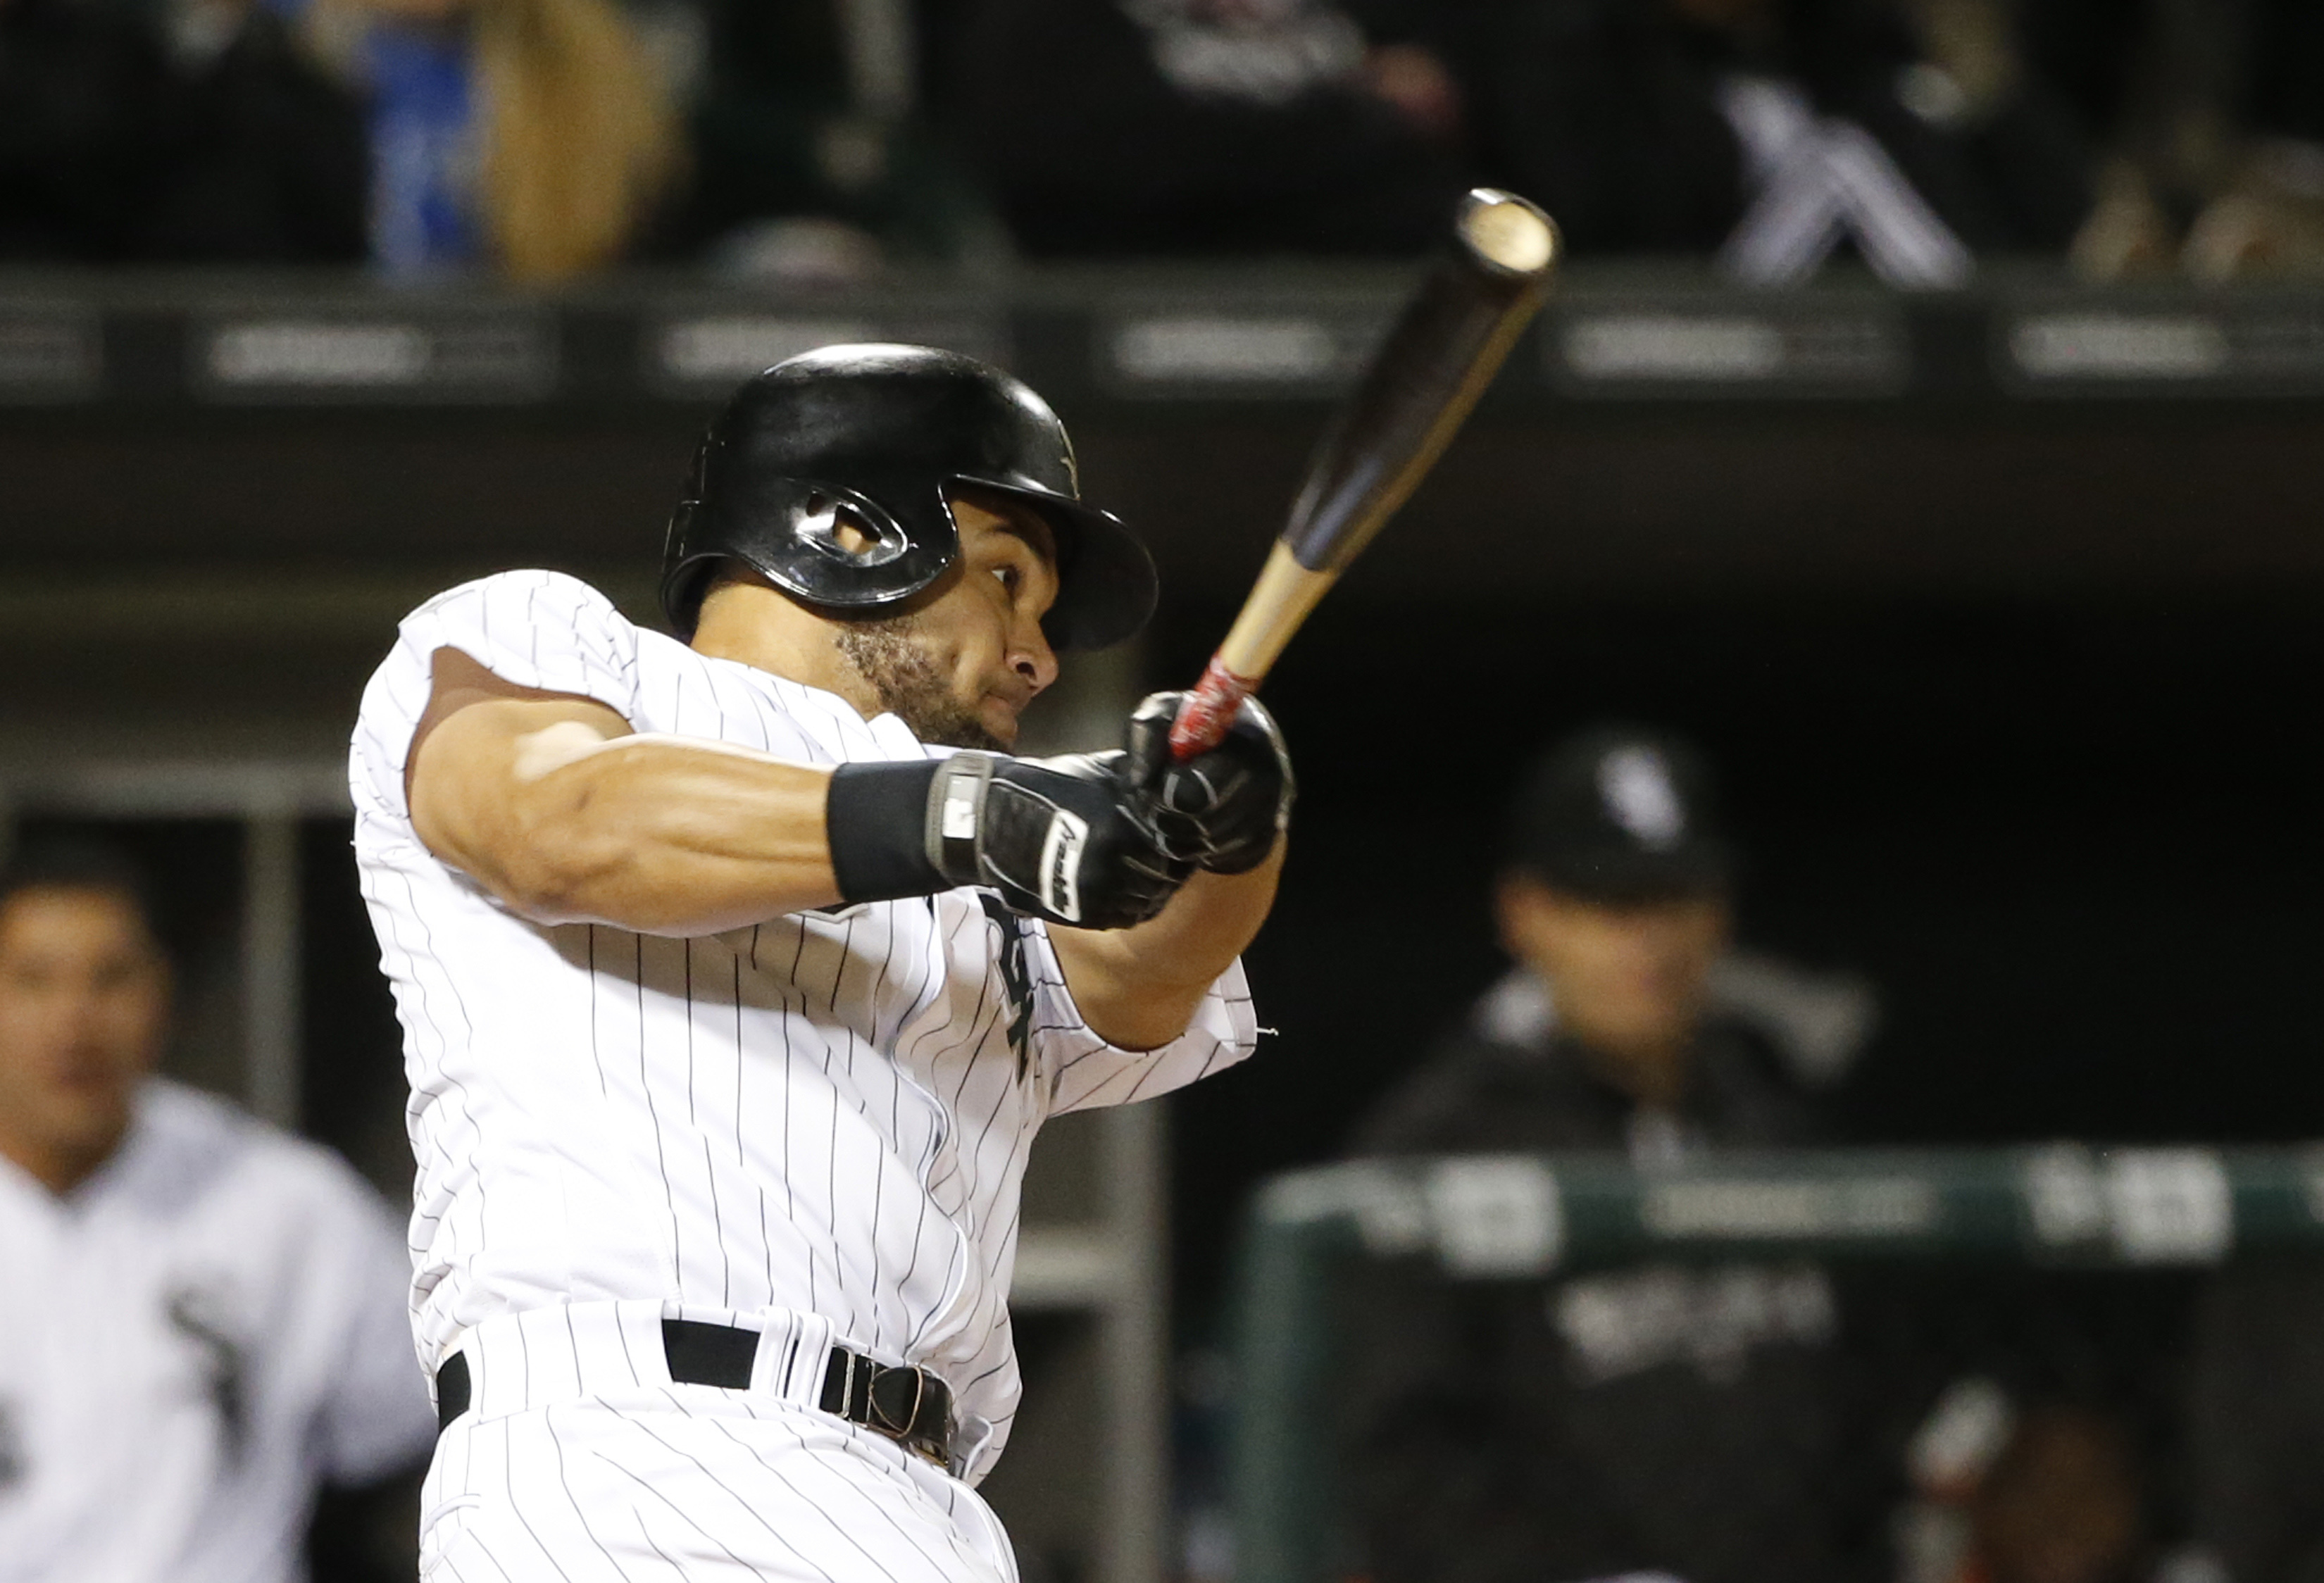 Chicago White Sox's Melky Cabrera hits an RBI triple off Houston Astros starting pitcher Doug Fister, scoring Todd Frazier, during the sixth inning of a baseball game, Wednesday, May 18, 2016, in Chicago. (AP Photo/Charles Rex Arbogast)